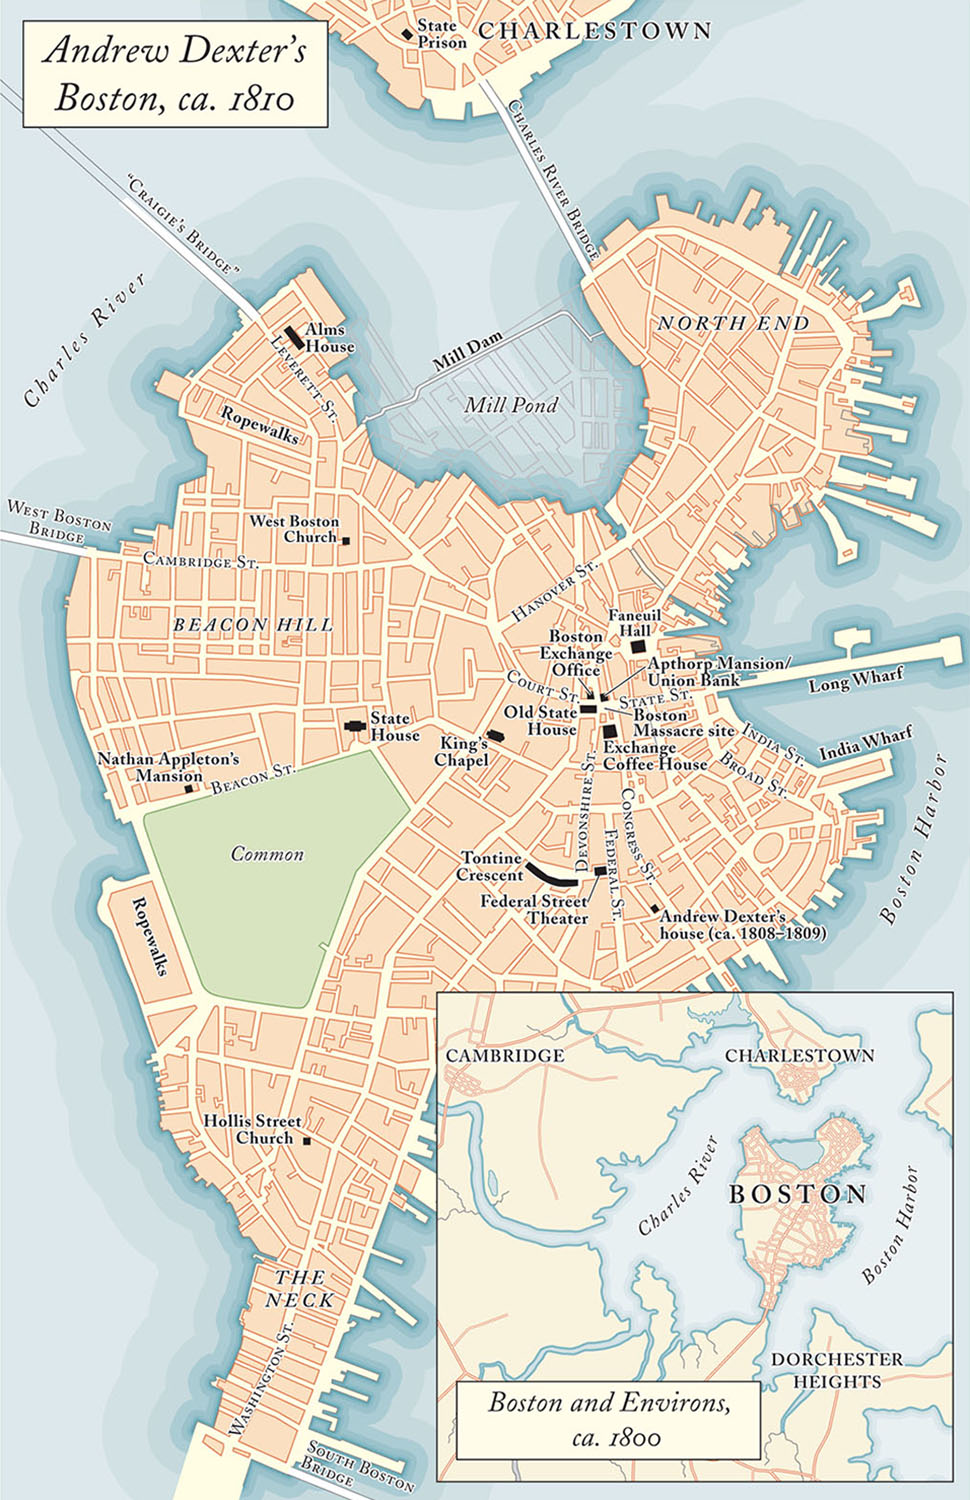 Drawn for   The Exchange Artist: A Tale of High-Flying Speculation and America's First Banking Collapse,  by Jane Kamensky  (Viking, 2008). Map copyright © Jane Kamensky.    Another map originally designed in grayscale; re-styling Adobe Illustrator vector maps is easy, particularly if the original file is rationally layered.